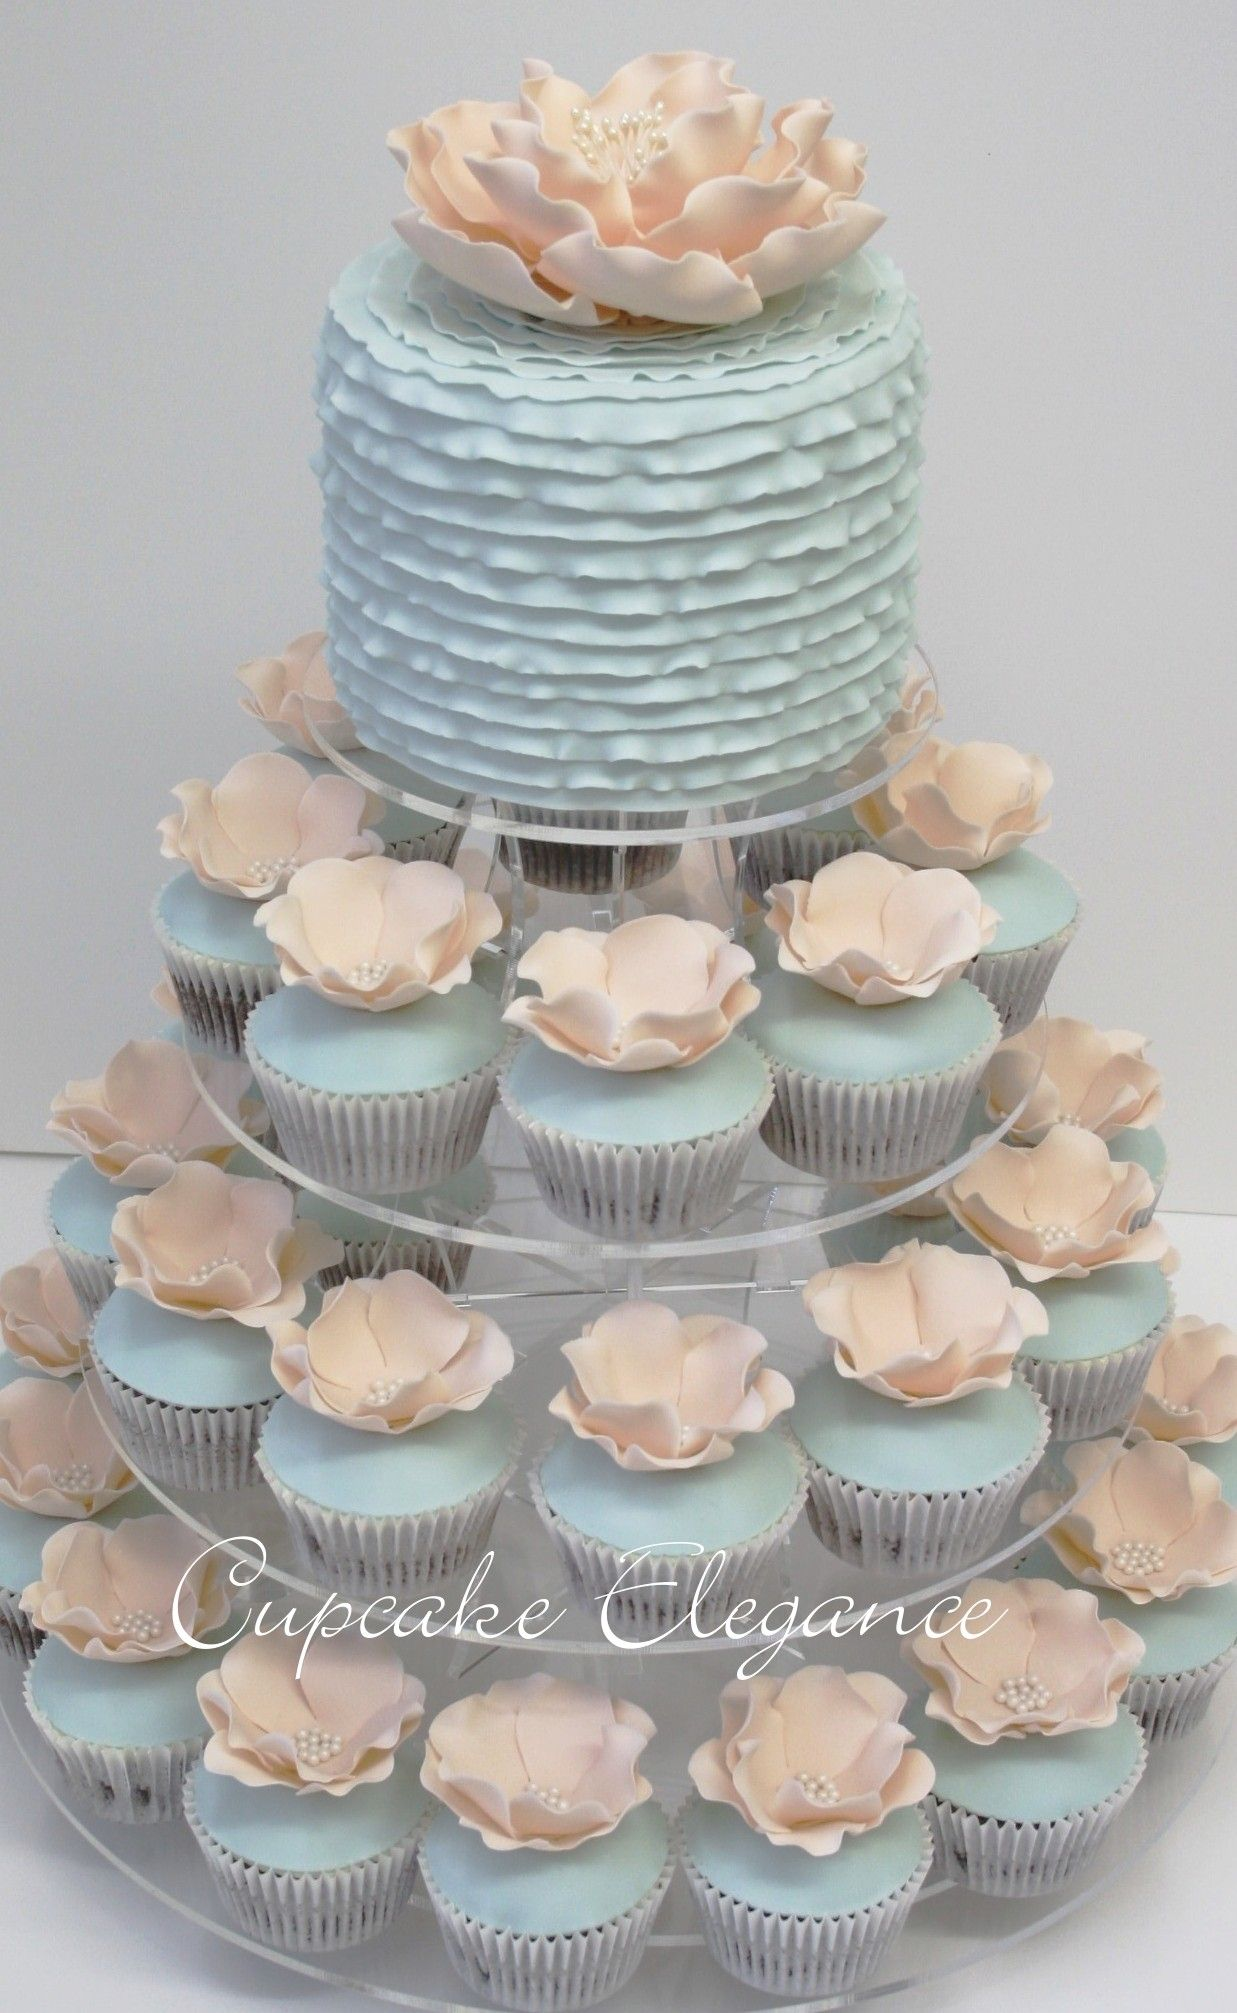 Cake and Cupcakes by Cupcake Elegance